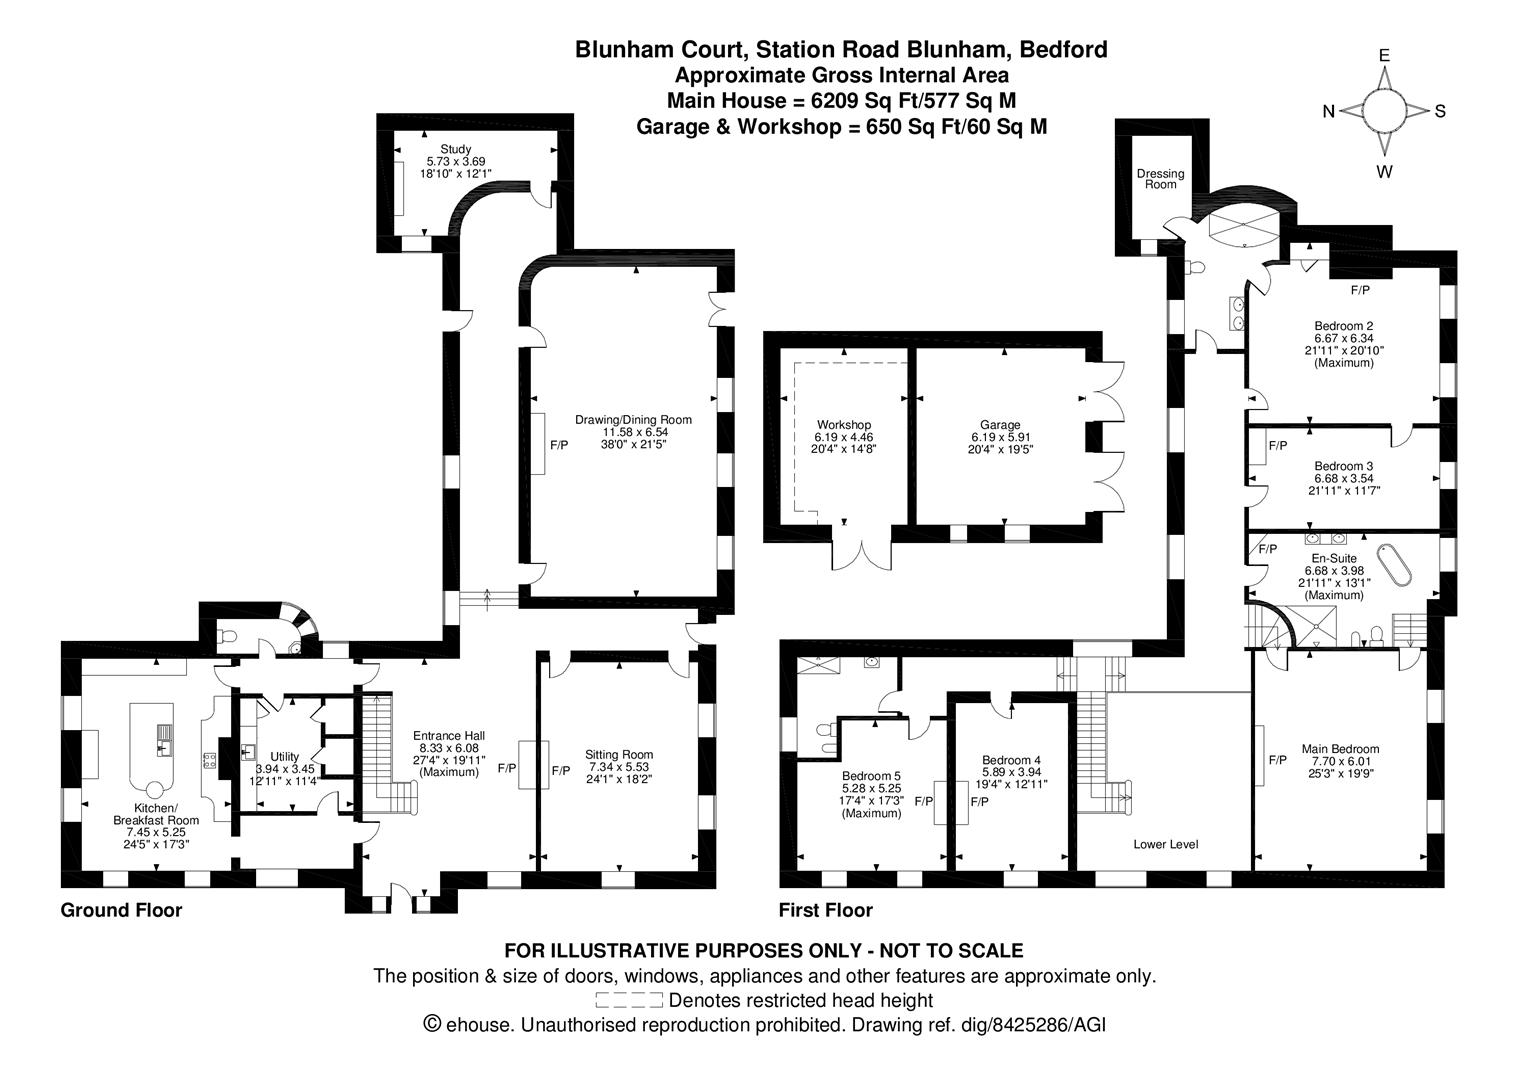 5 Bedroom Country House For Sale In Bedford